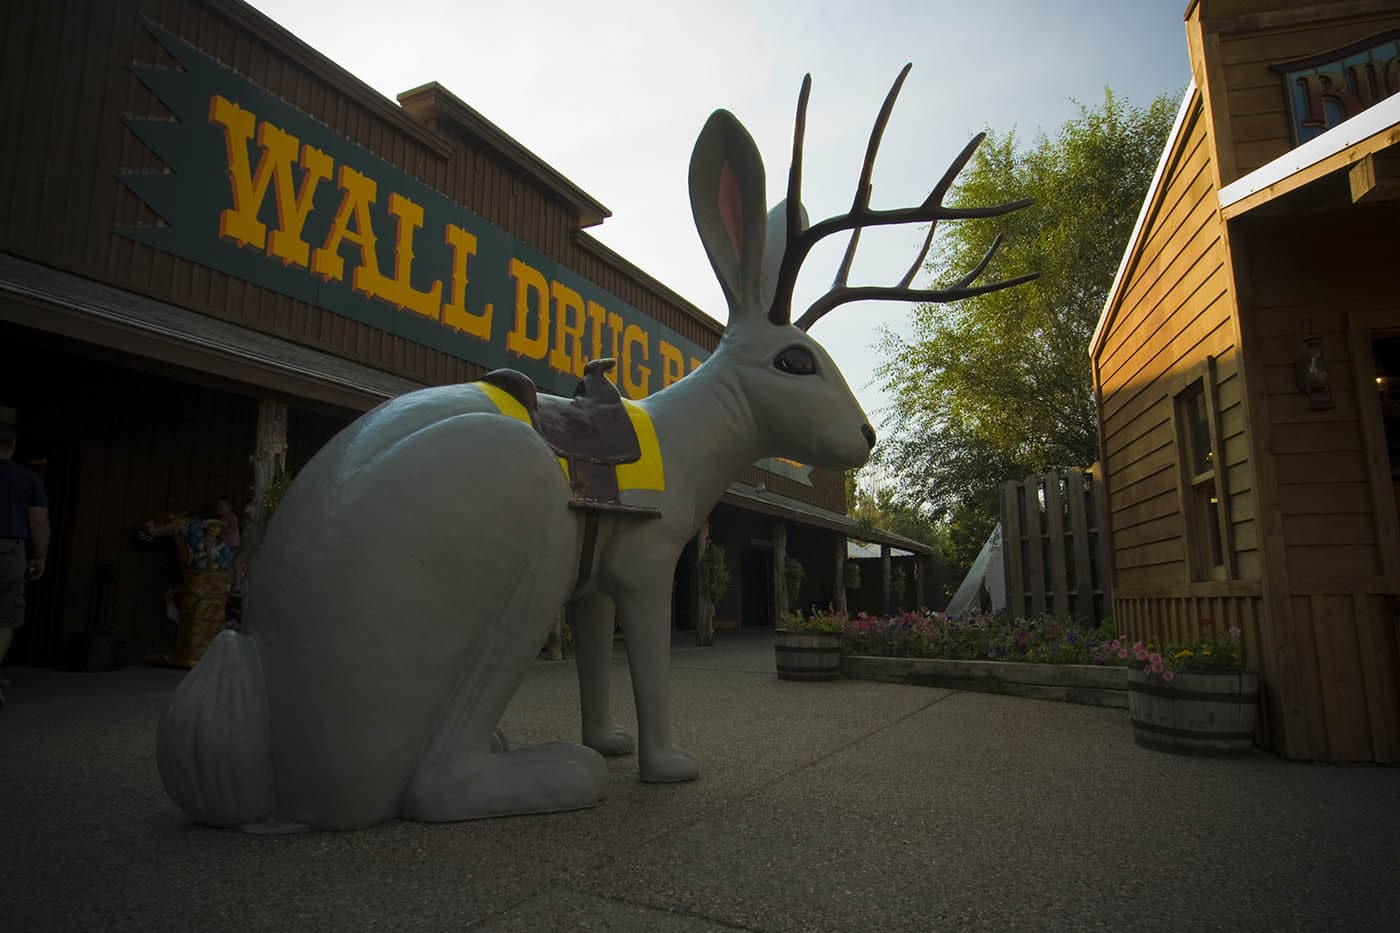 Jackalope at Wall Drug Store in Wall, South Dakota. Labor Day Chicago to Mount Rushmore Road Trip.